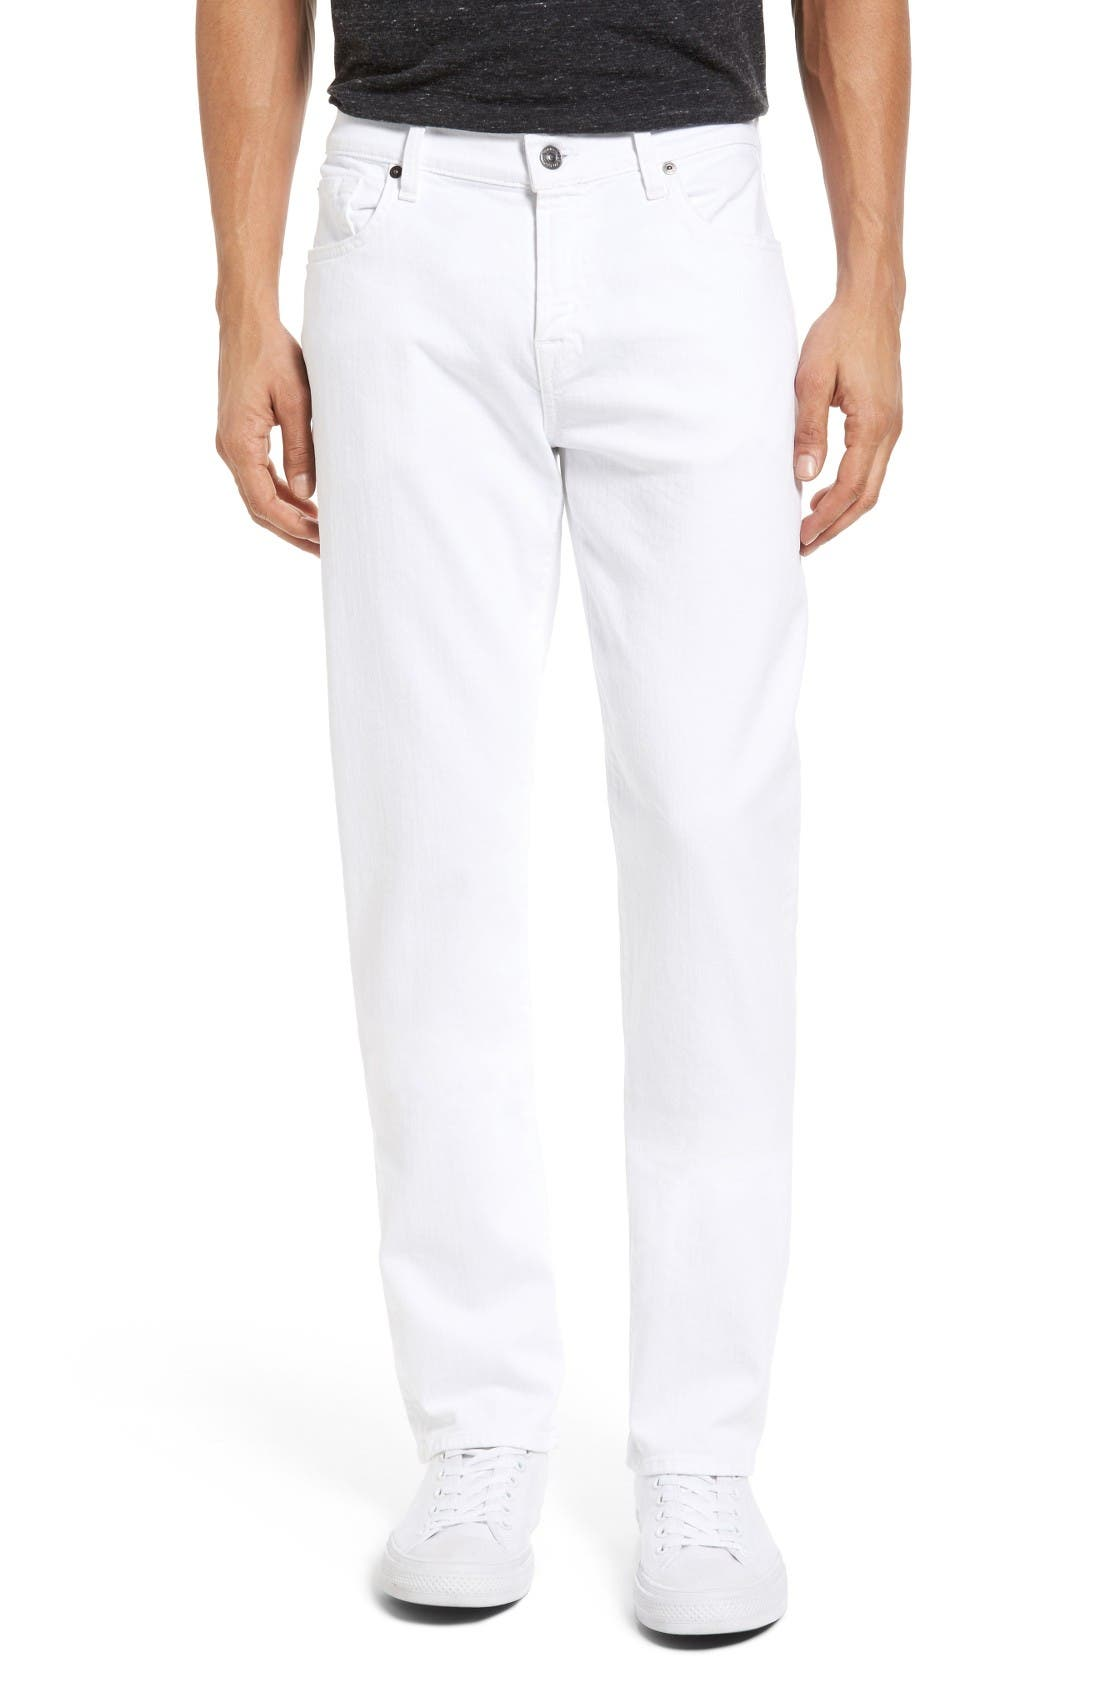 Luxe Performance - Slimmy Slim Fit Jeans,                         Main,                         color, White